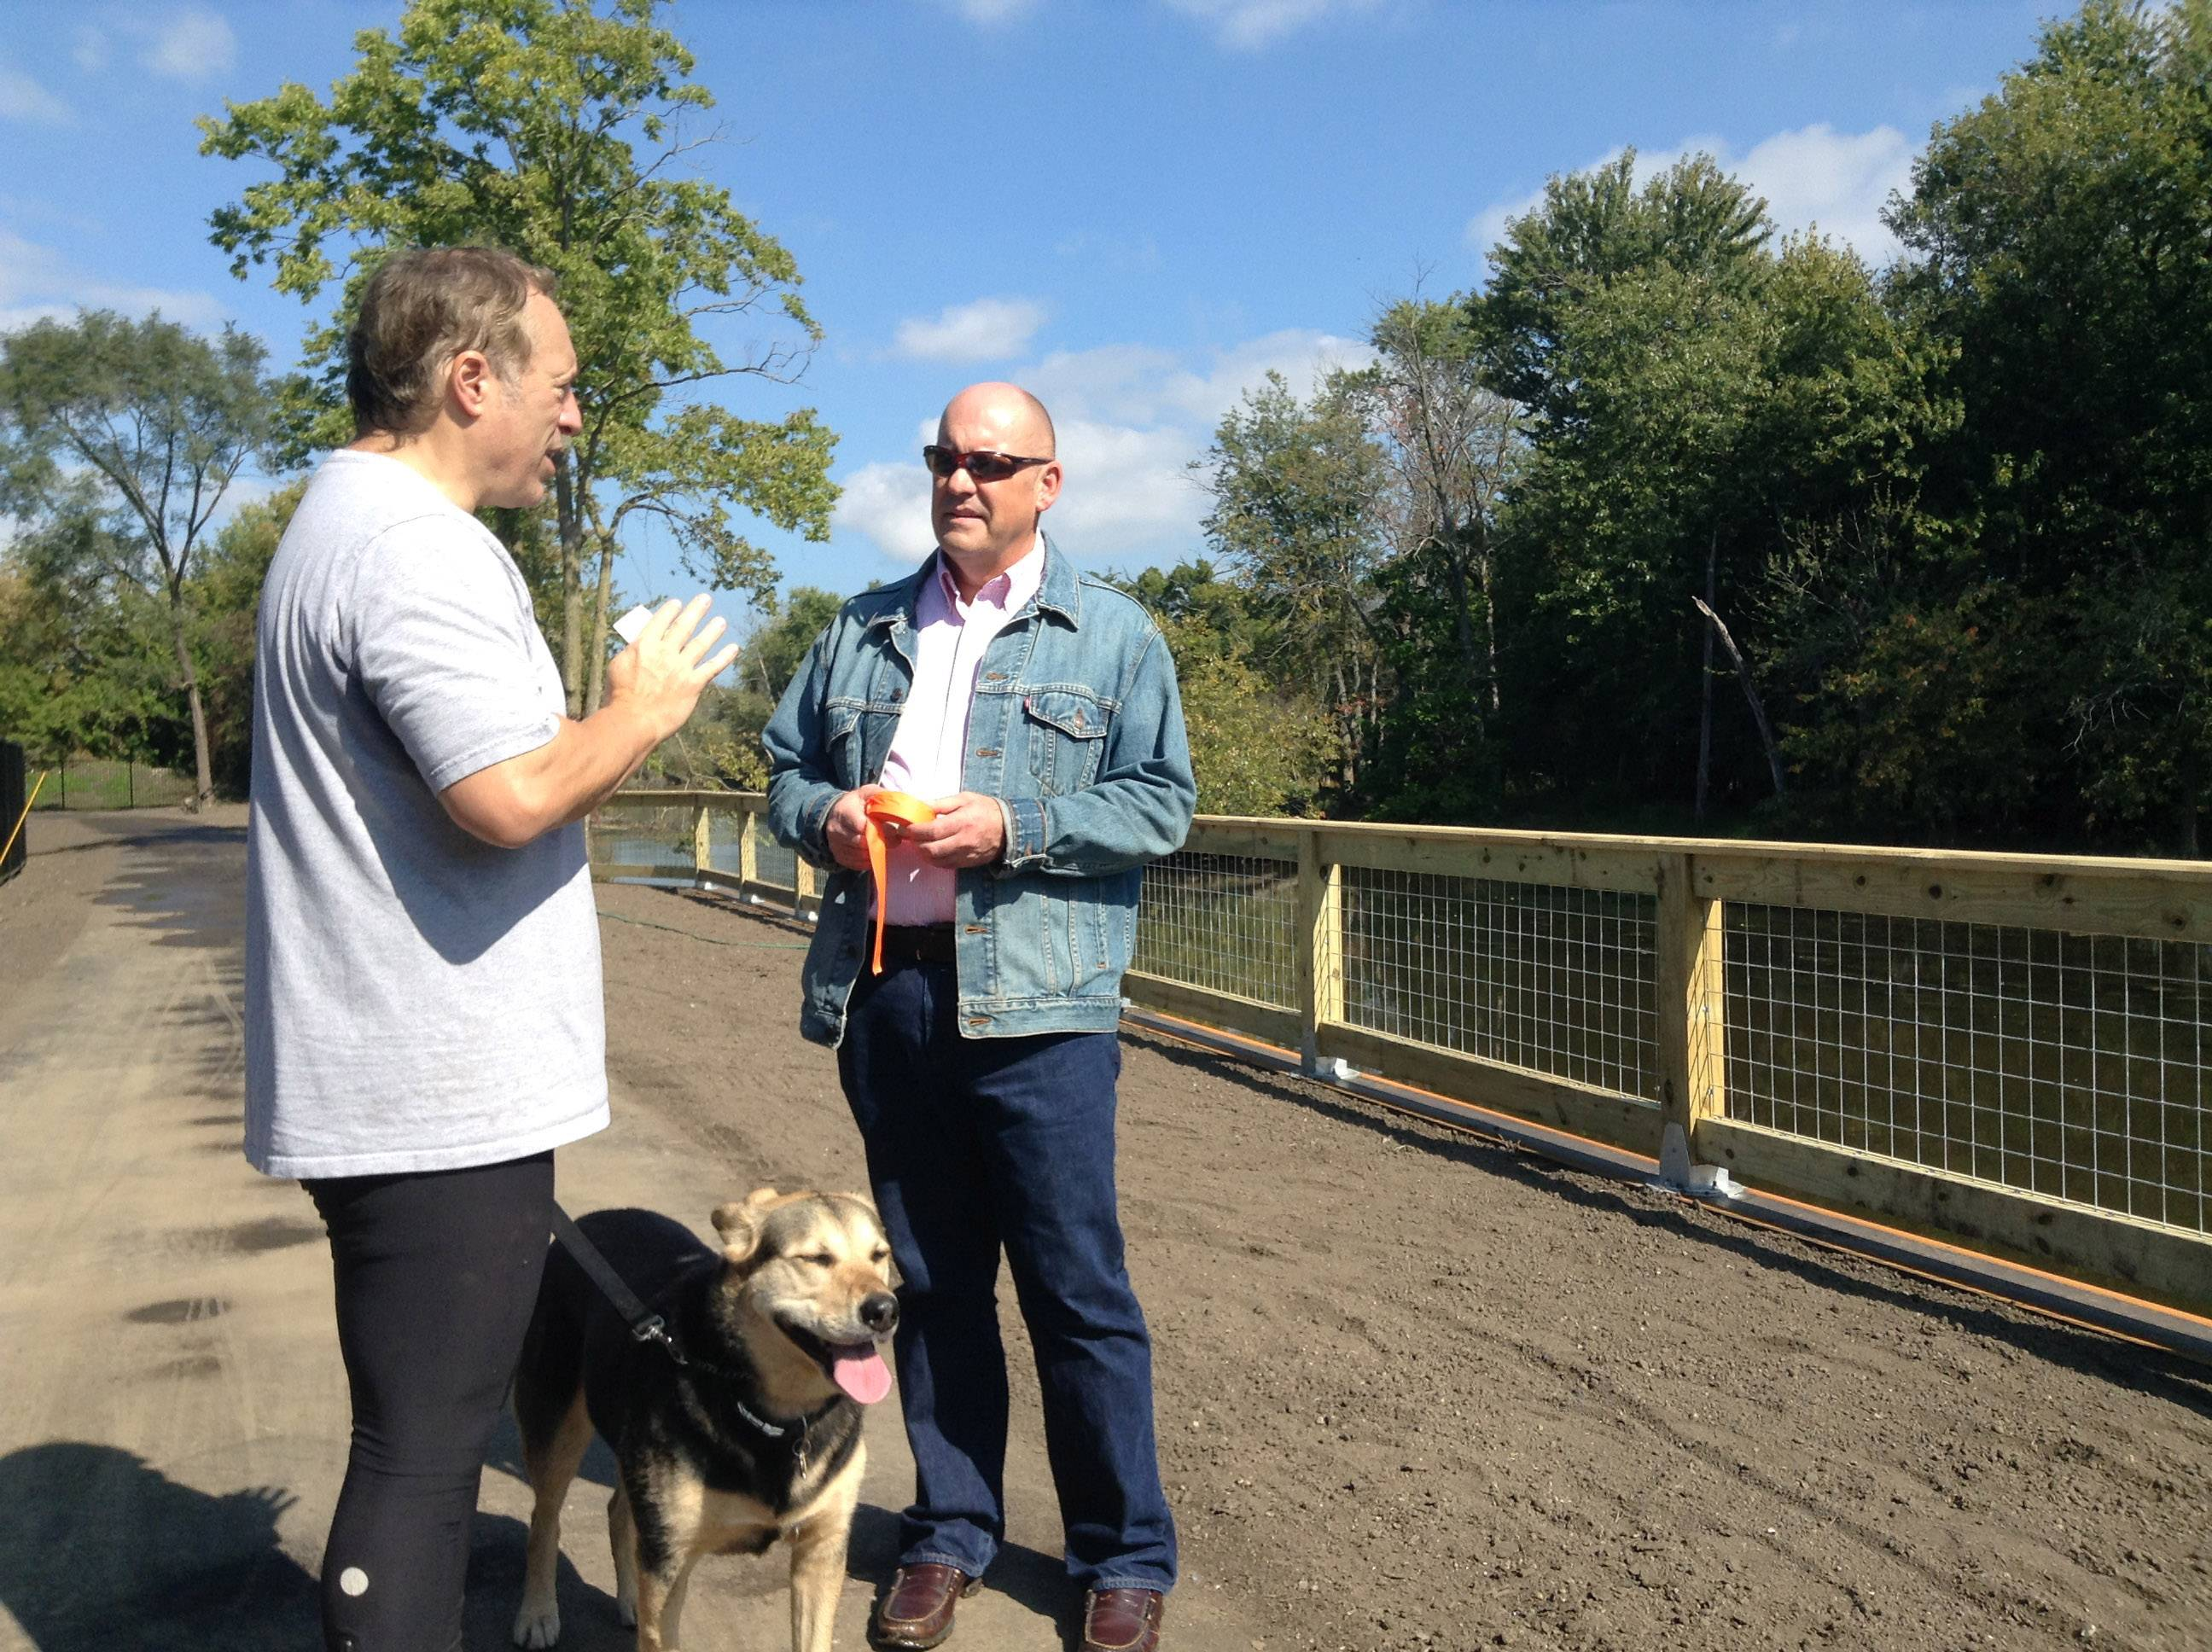 Randy Seebach, right, director of planning and land preservation for the Lake County Forest Preserve District, chats with Bob Friend of Riverwoods along the last link of the Des Plaines River Trail that opened last fall. The forest district tried for 20 years to acquire the land for it.